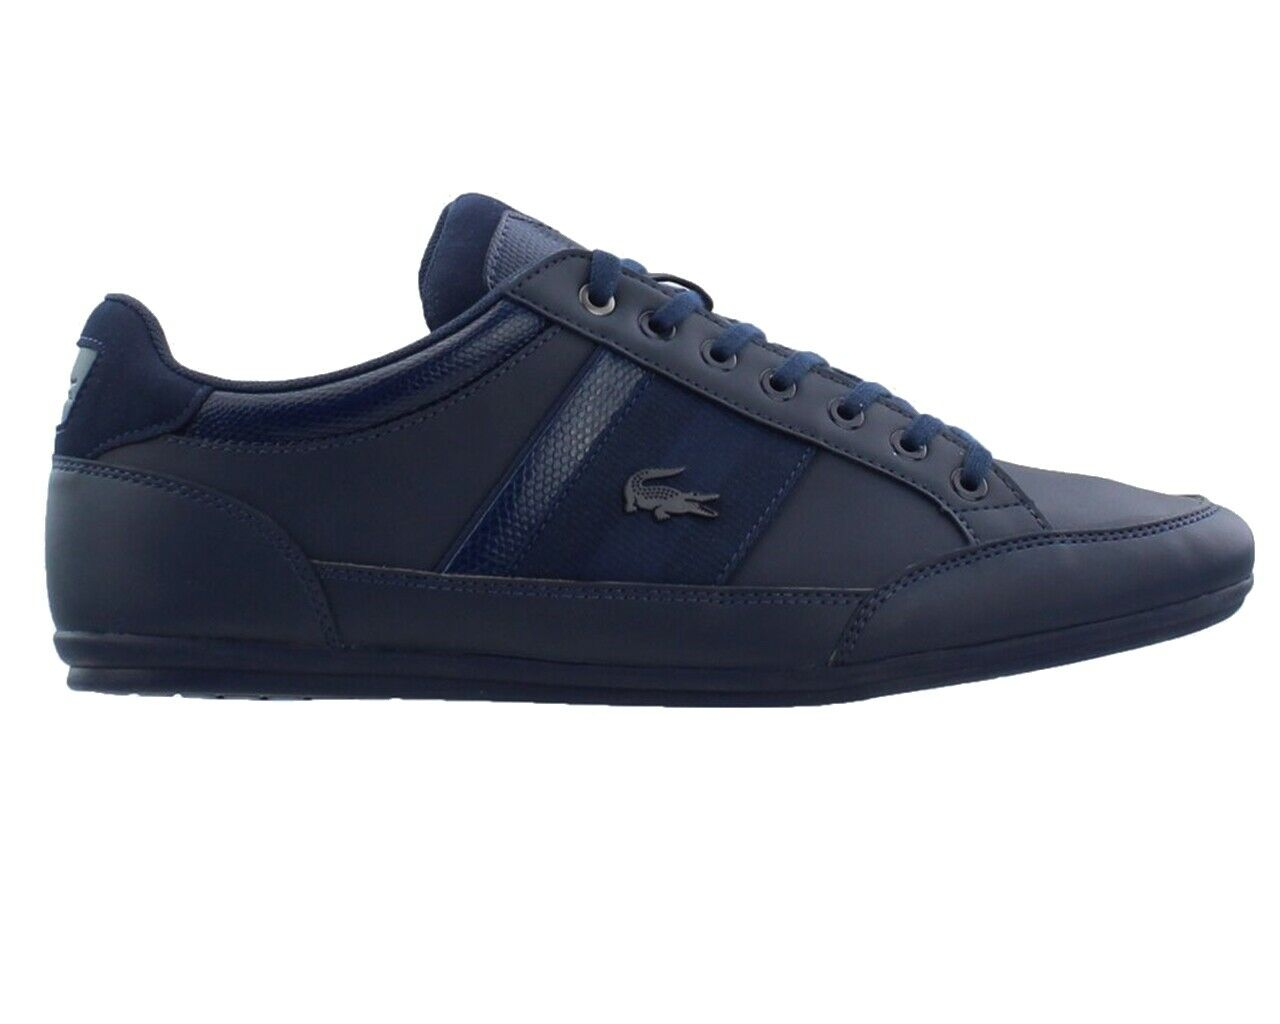 2c2f3bb834f56f Lacoste Chaymon 119 2 CMA Mens Trainers Navy Lace Up shoes ...